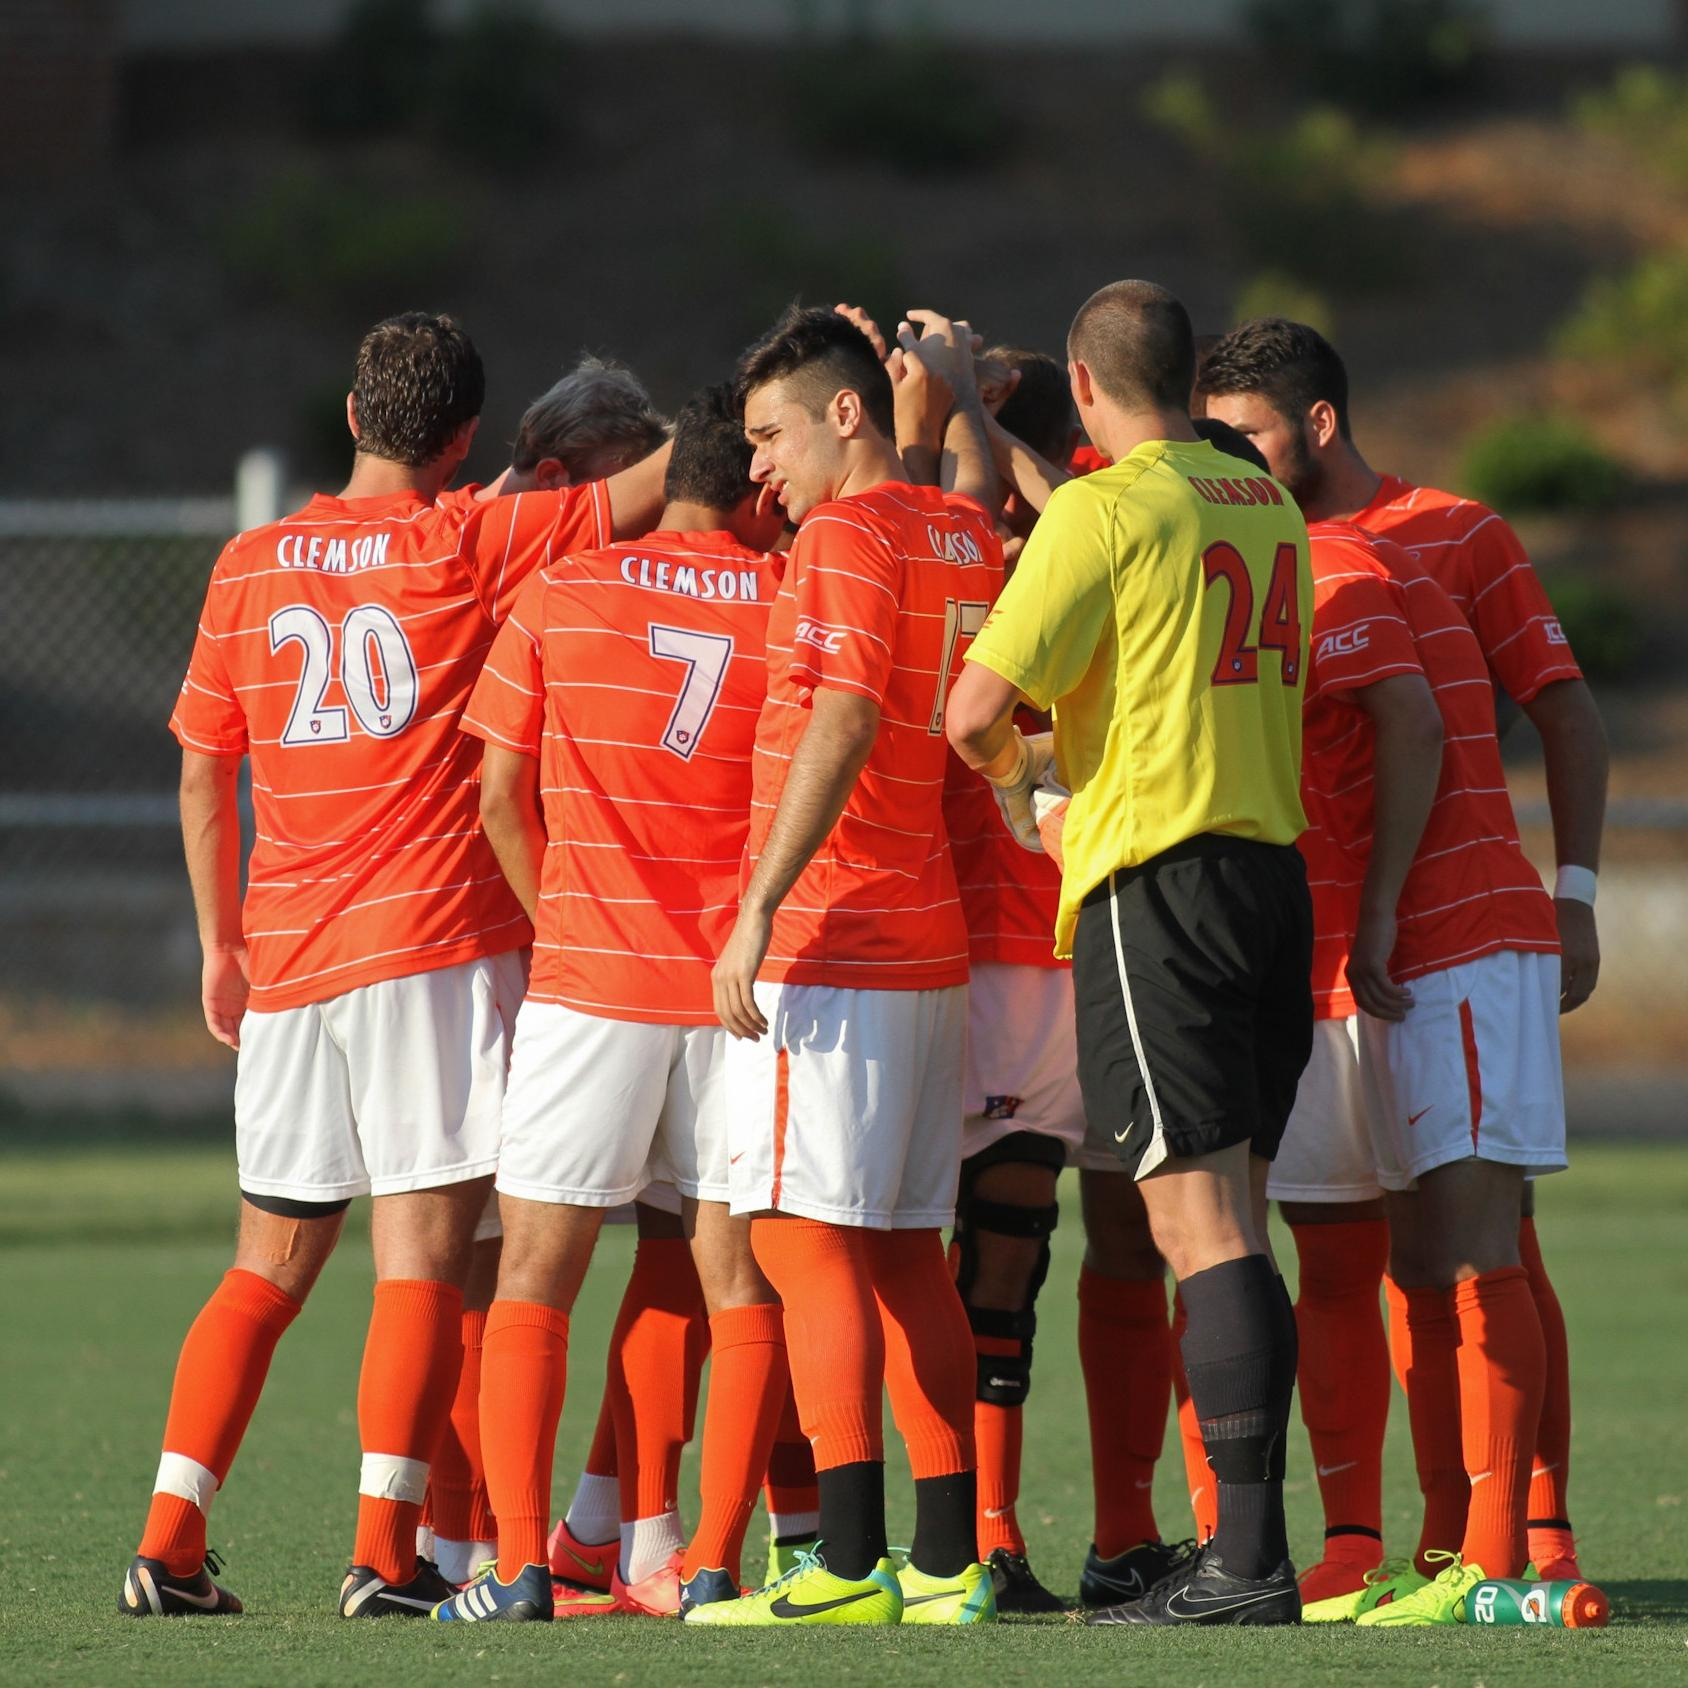 Clemson Knocks Off Campbell 2-0